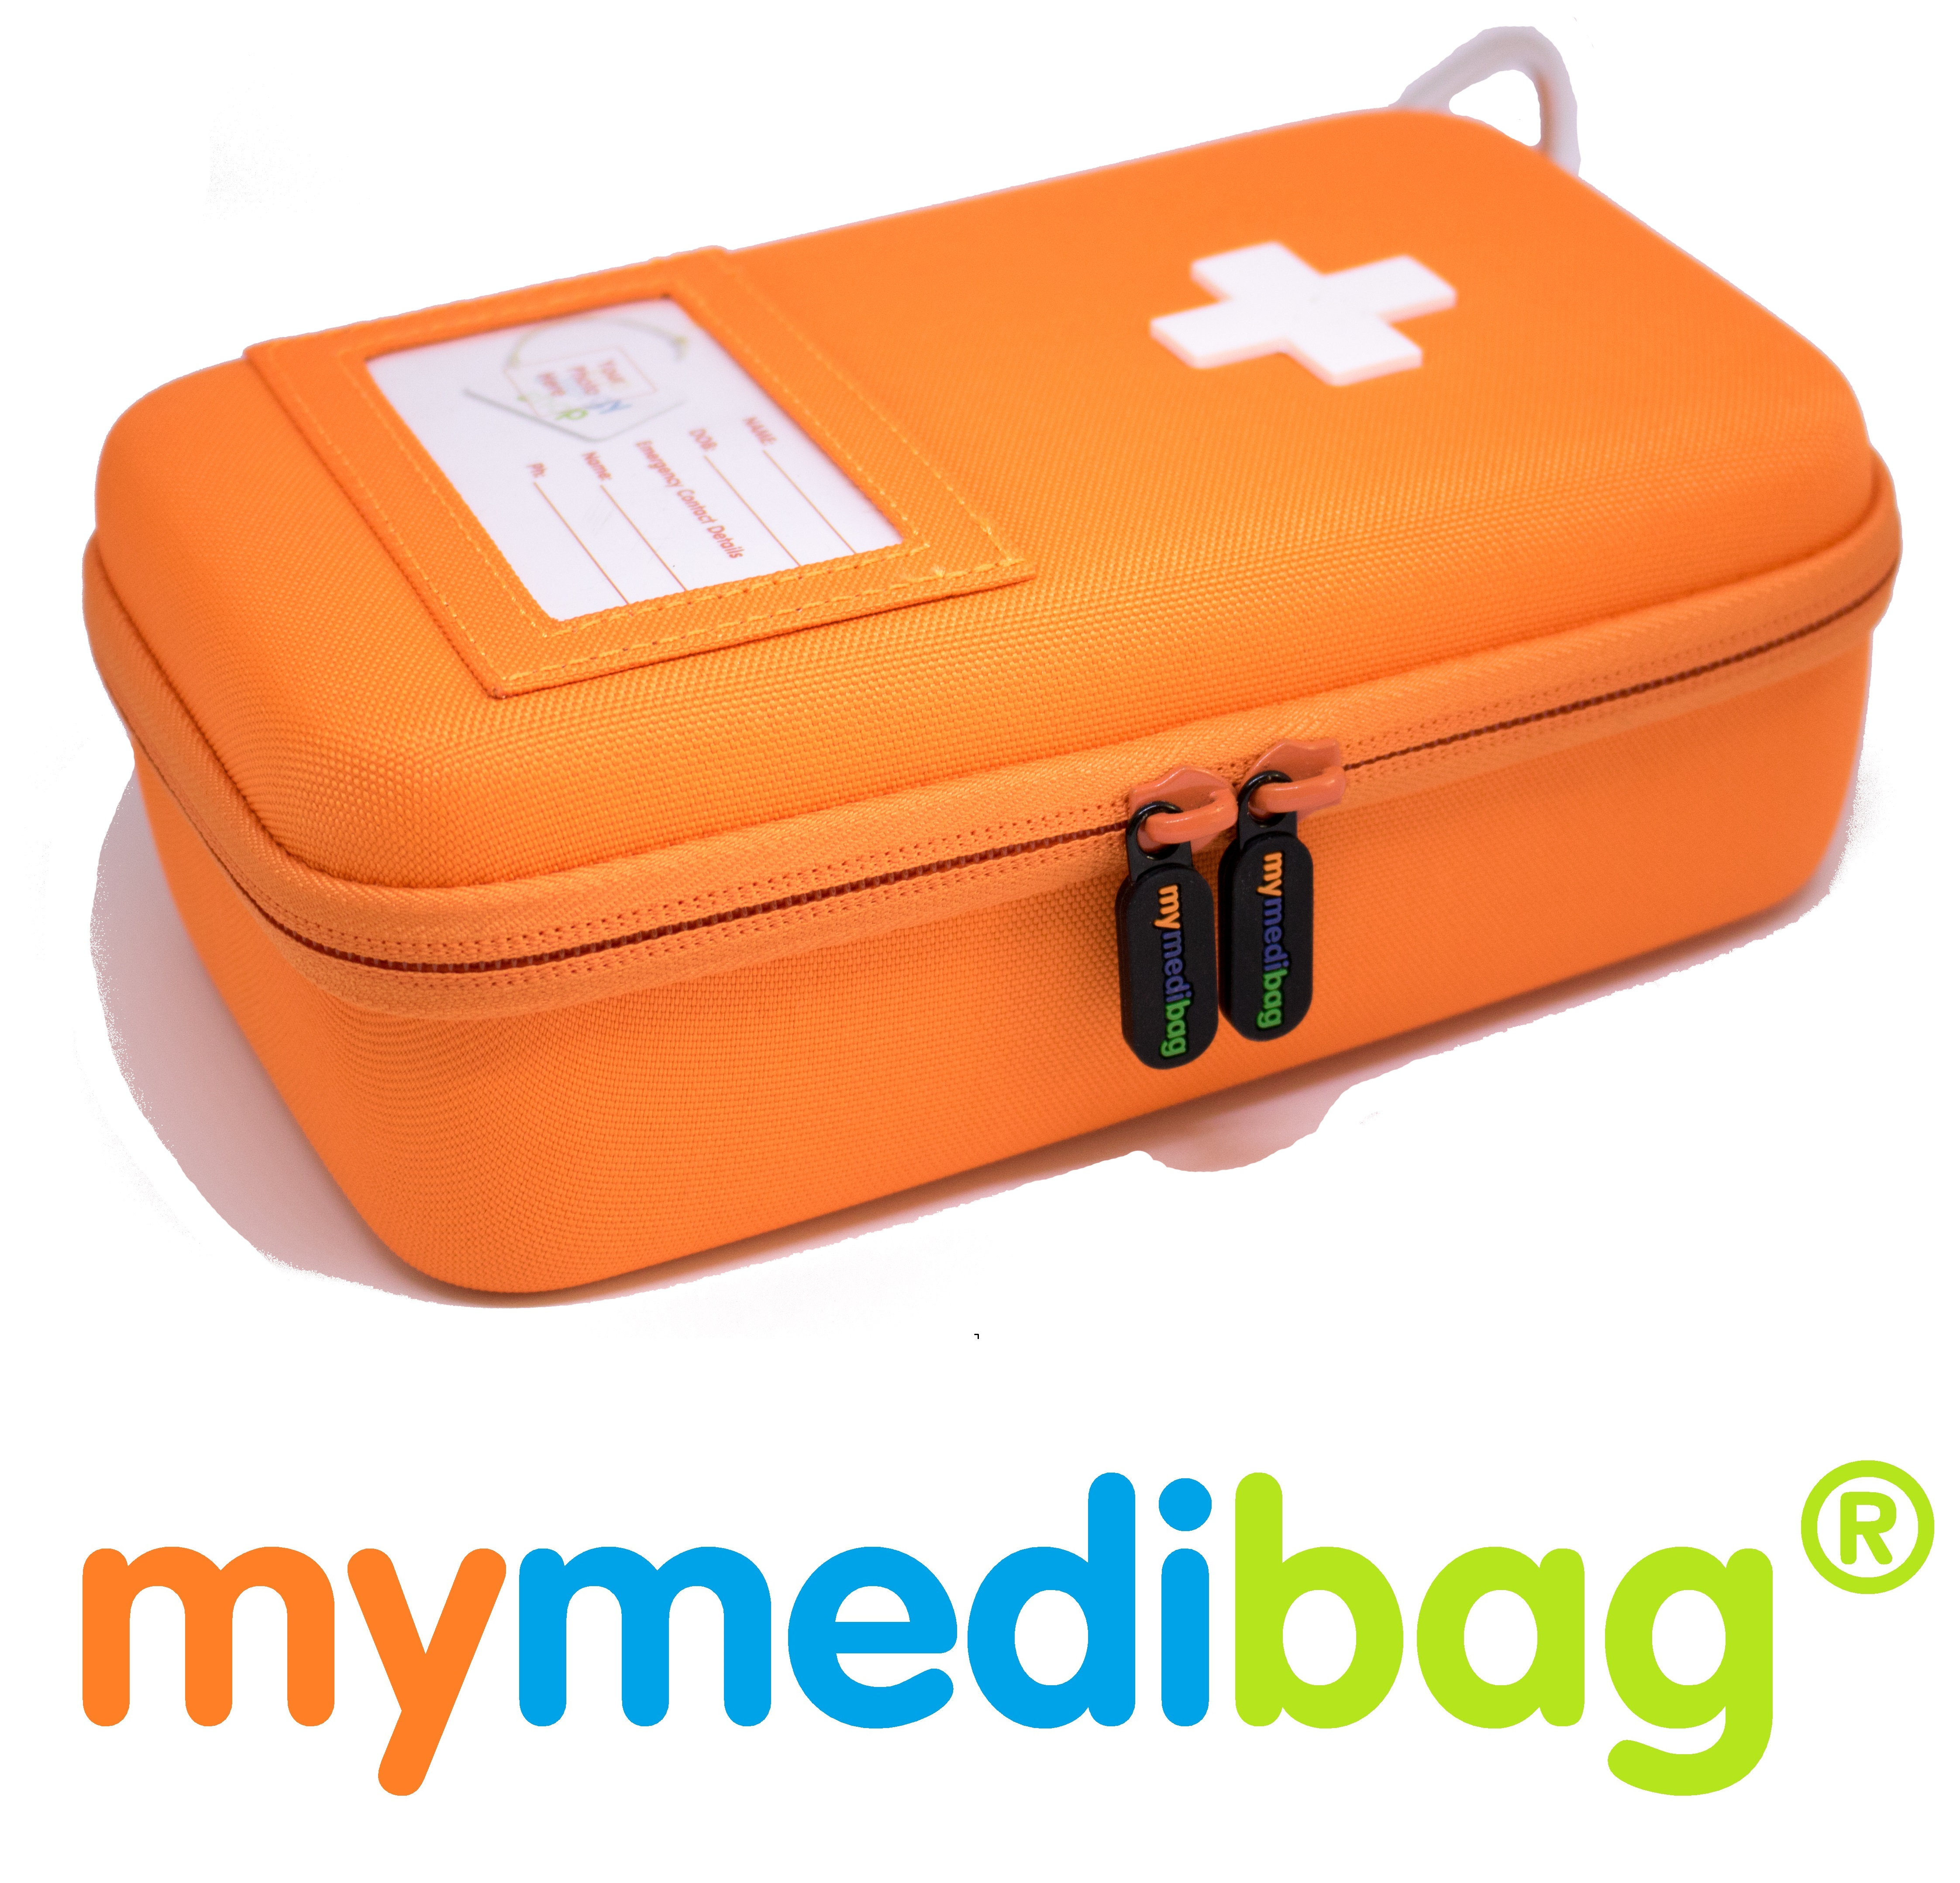 Mymedibag Large with Zippers